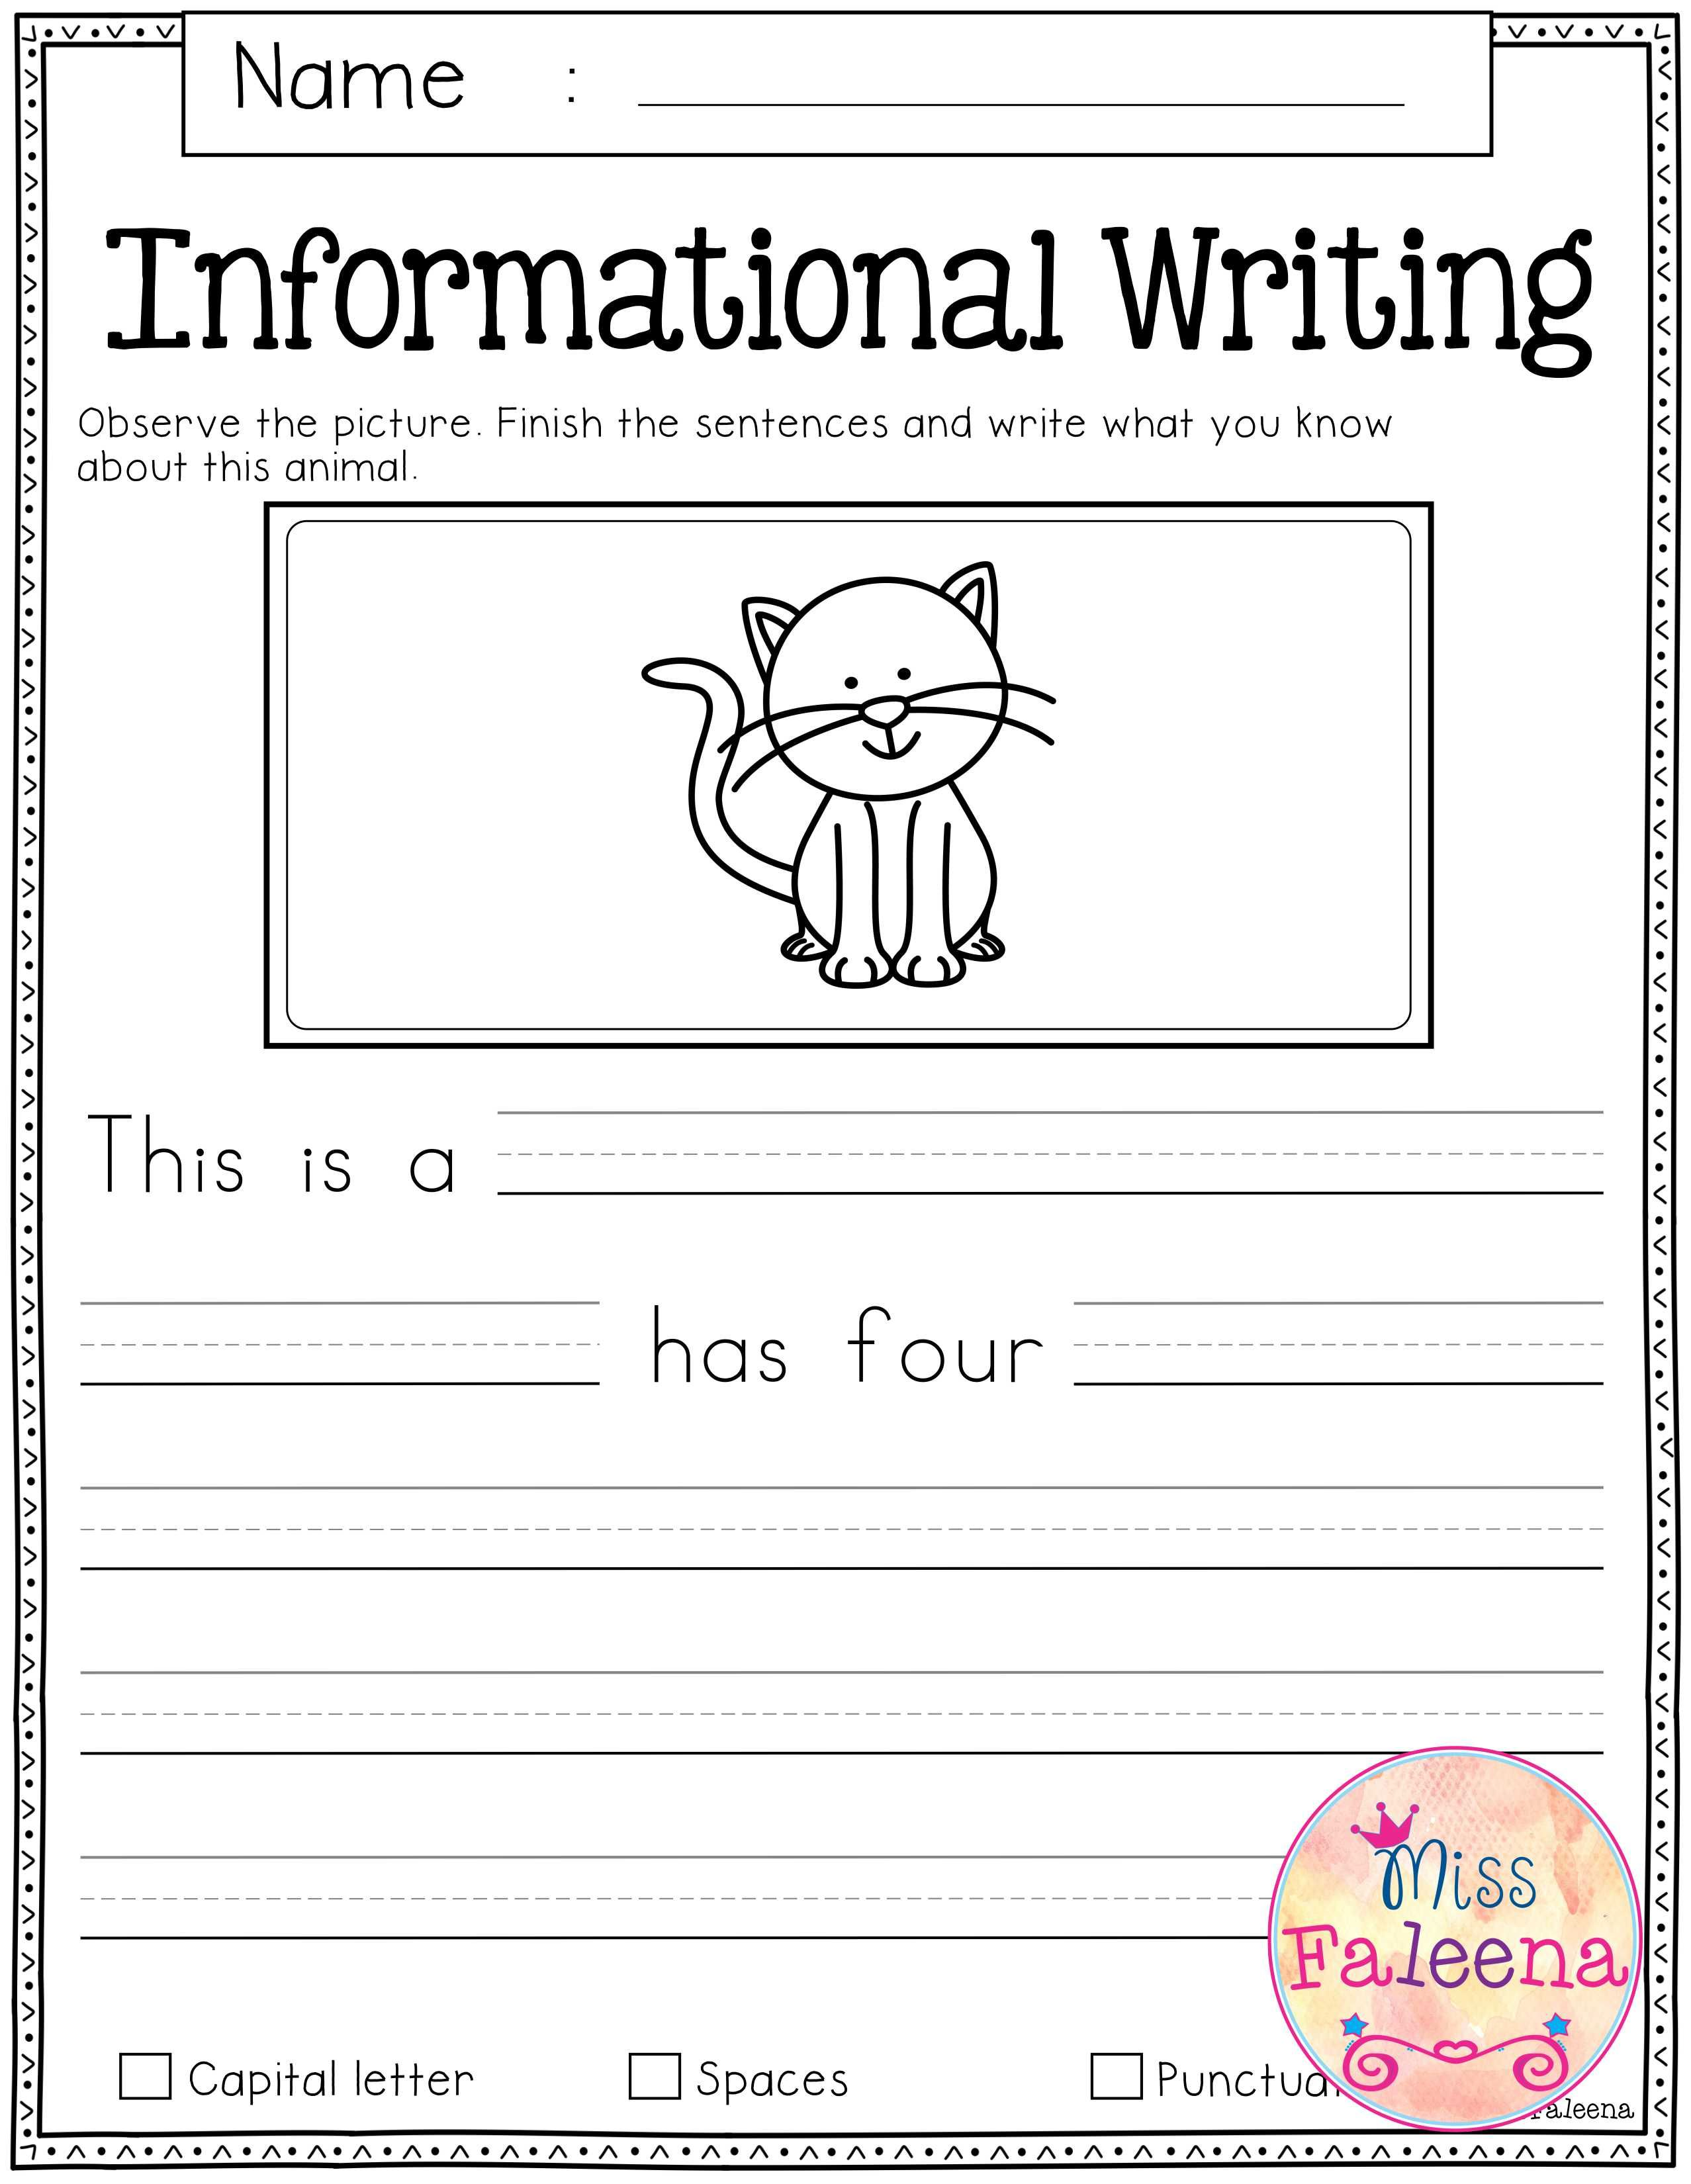 Free Writing Prompts Contains 20 Free Pages Of Writing Prompts Worksheets This Prod Free Writing Prompts Writing Prompts For Kids Kindergarten Writing Prompts Free first grade writing worksheets